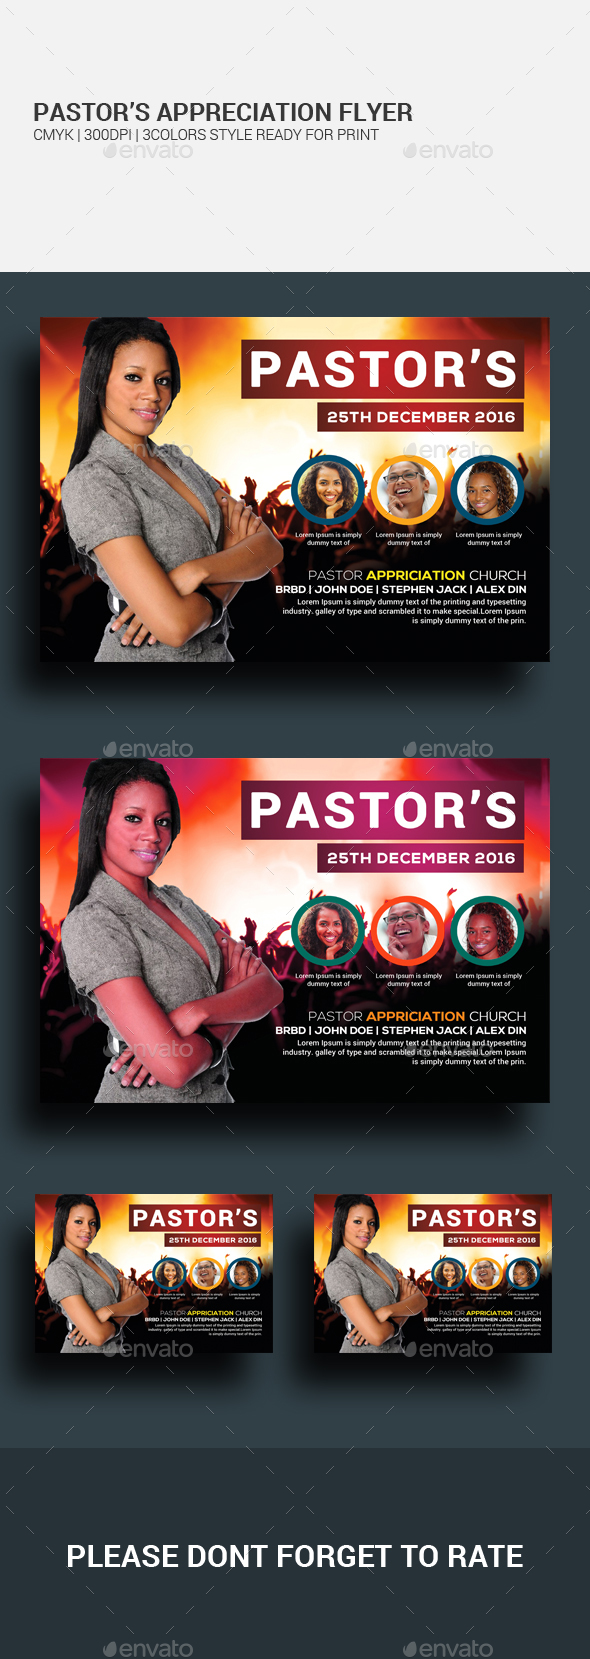 Pastor's Appreciation Flyer - Church Flyers